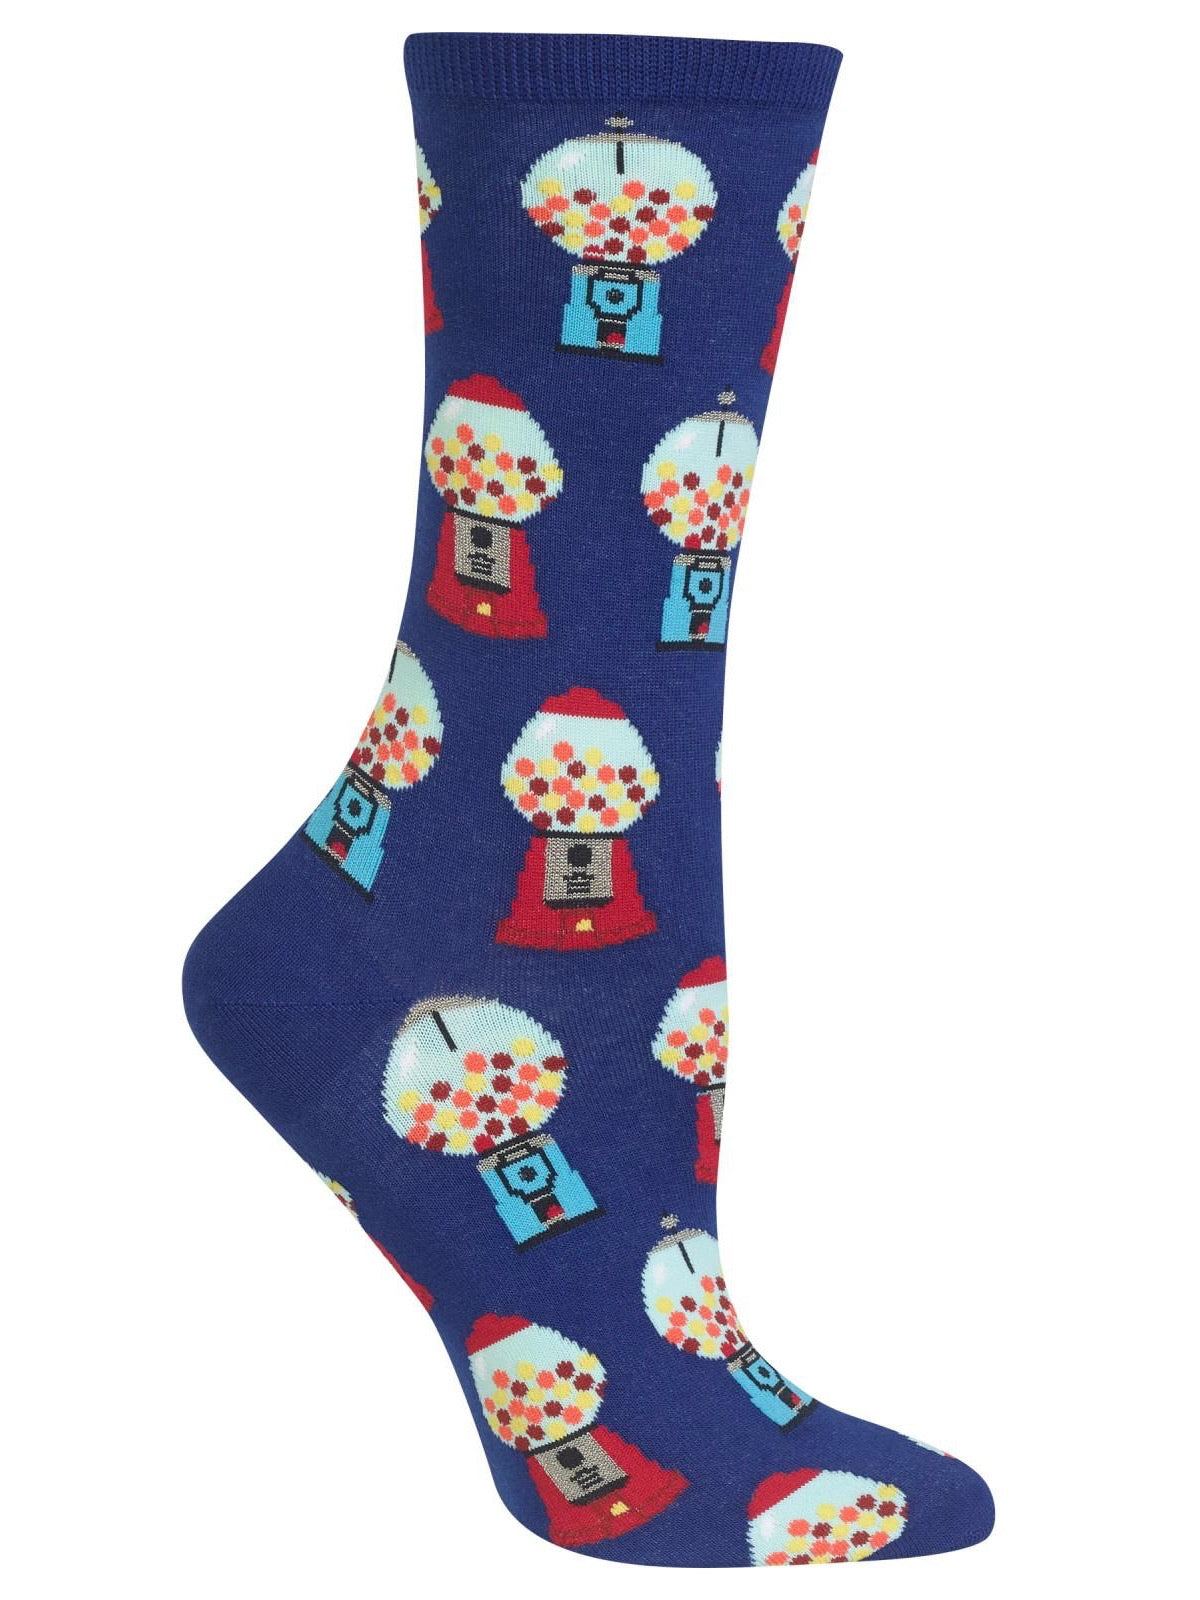 Women's Gumball Machine Crew Socks Dark Blue